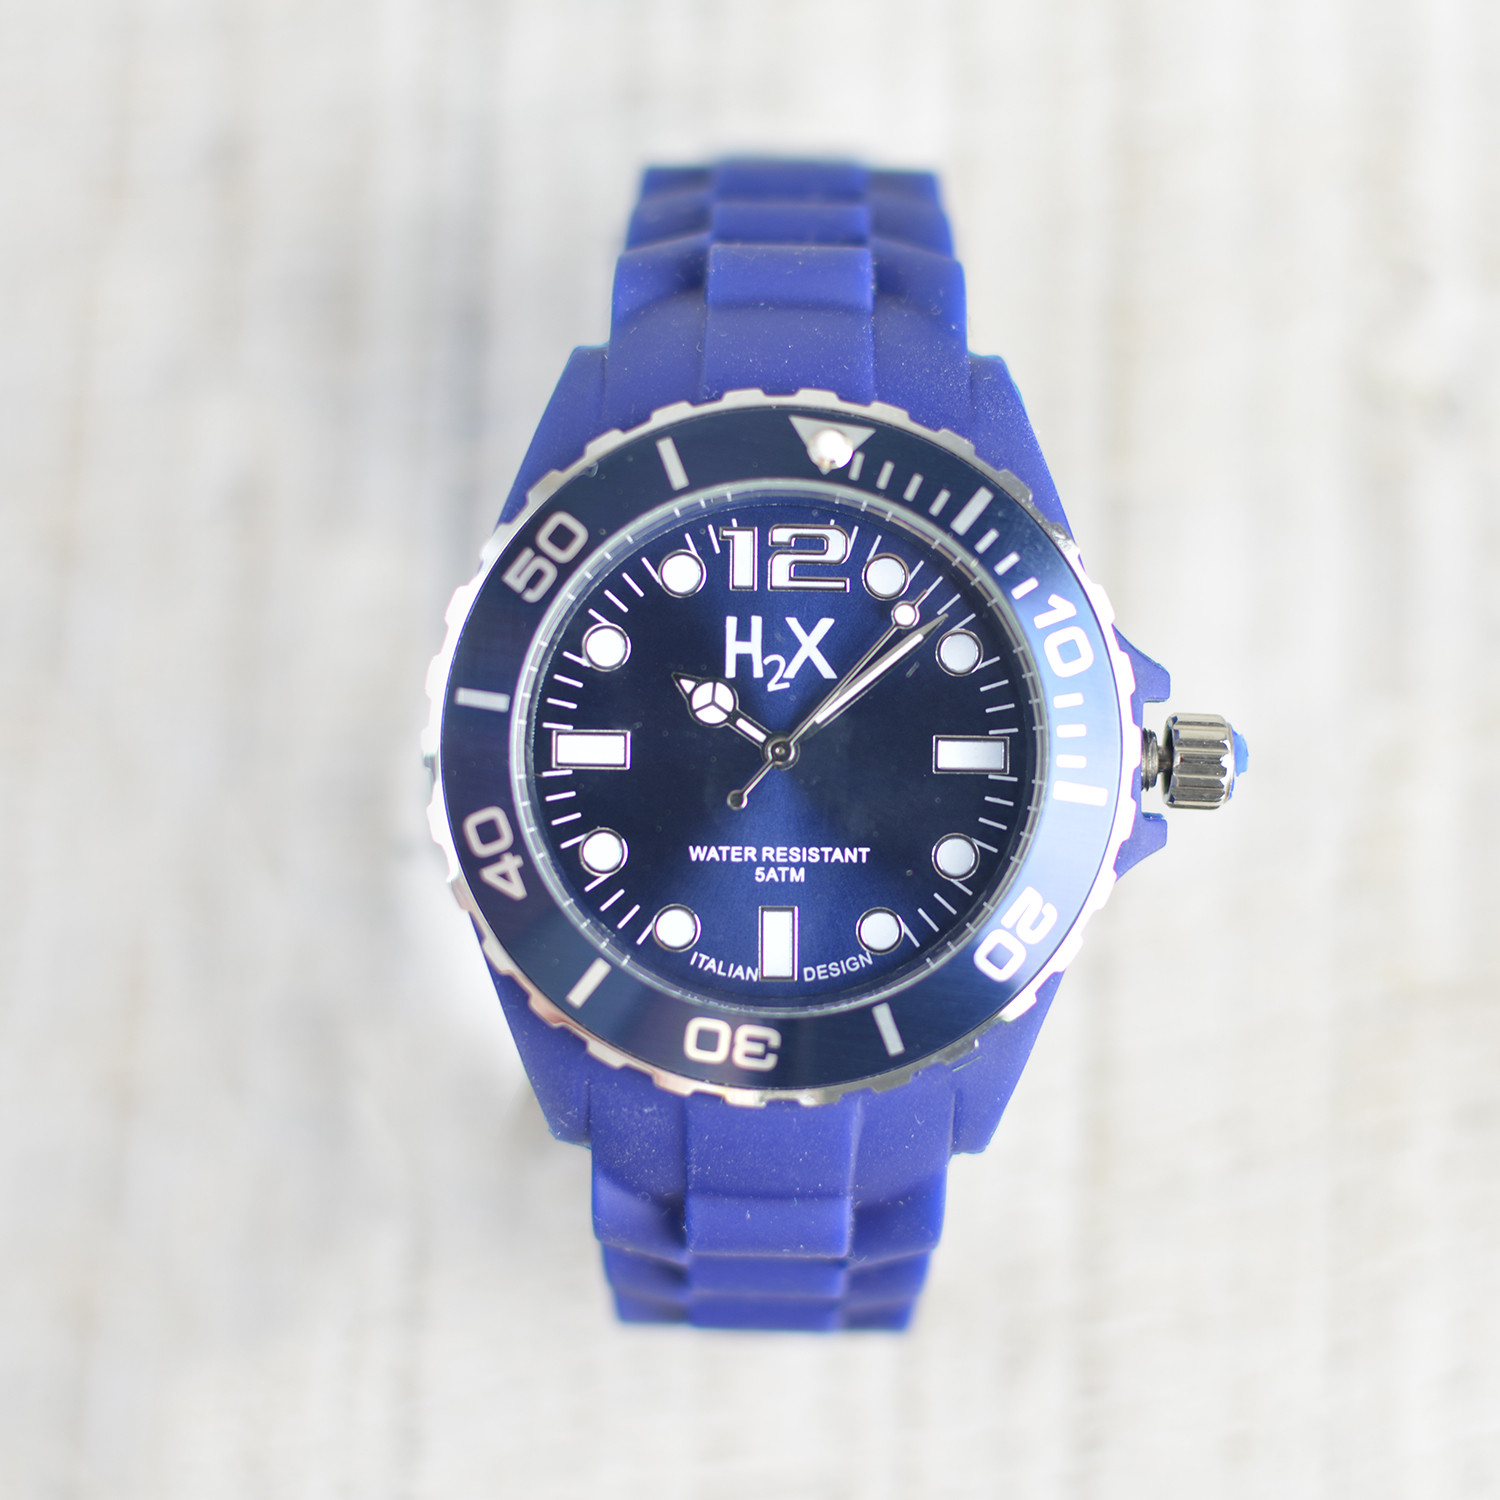 Wrist watch Blue H2X Unisex Home, and More